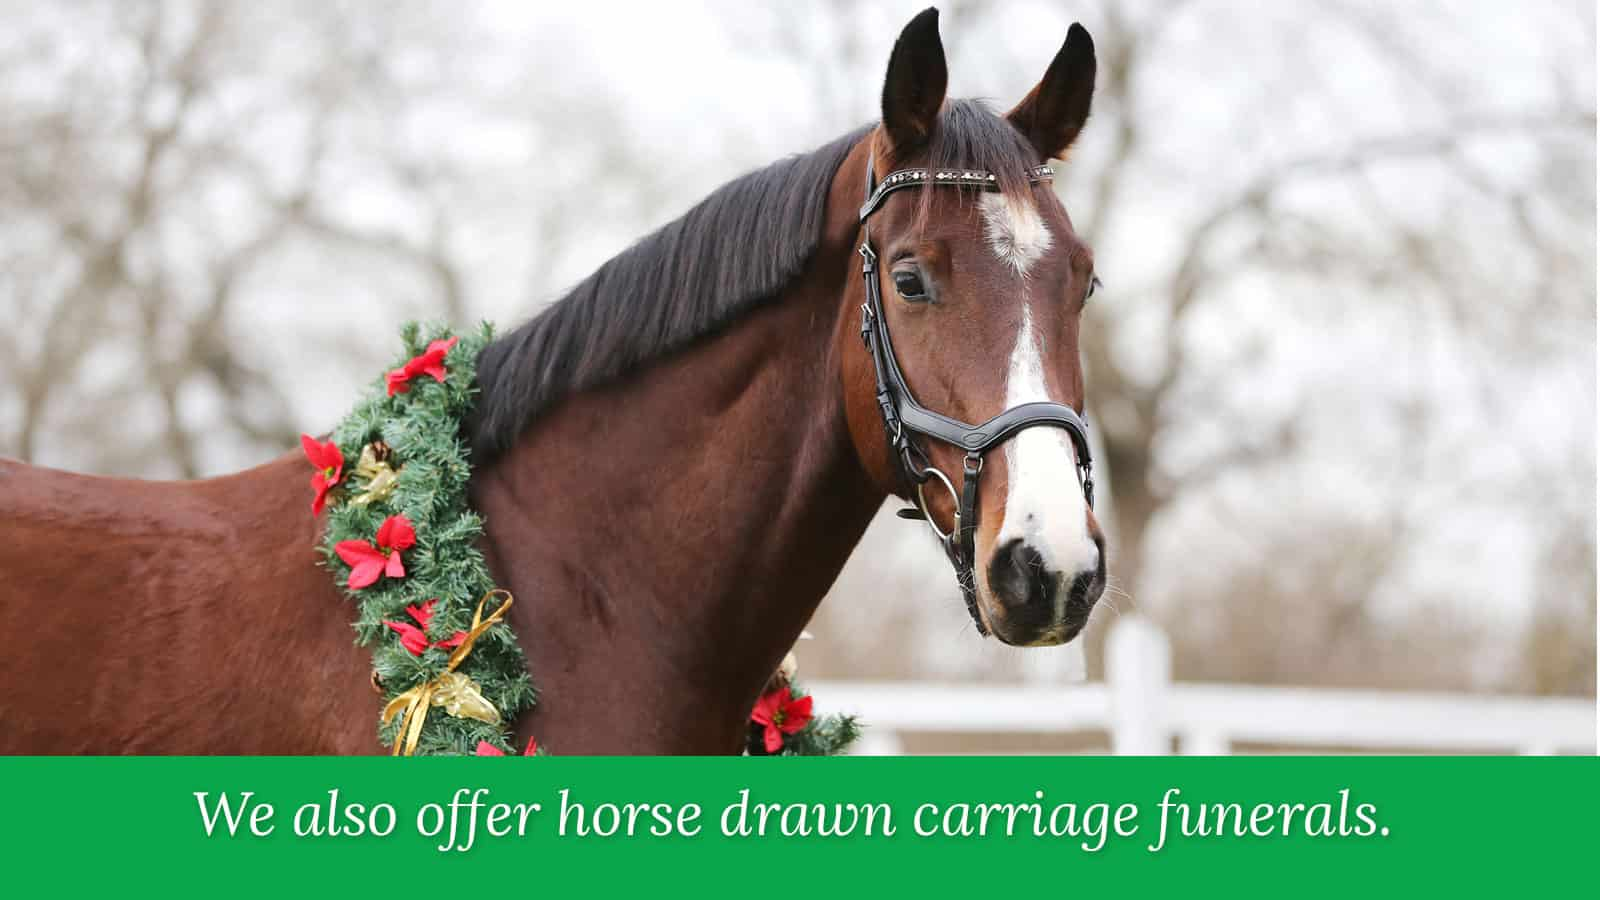 wmp-carousel-holiday-carriages